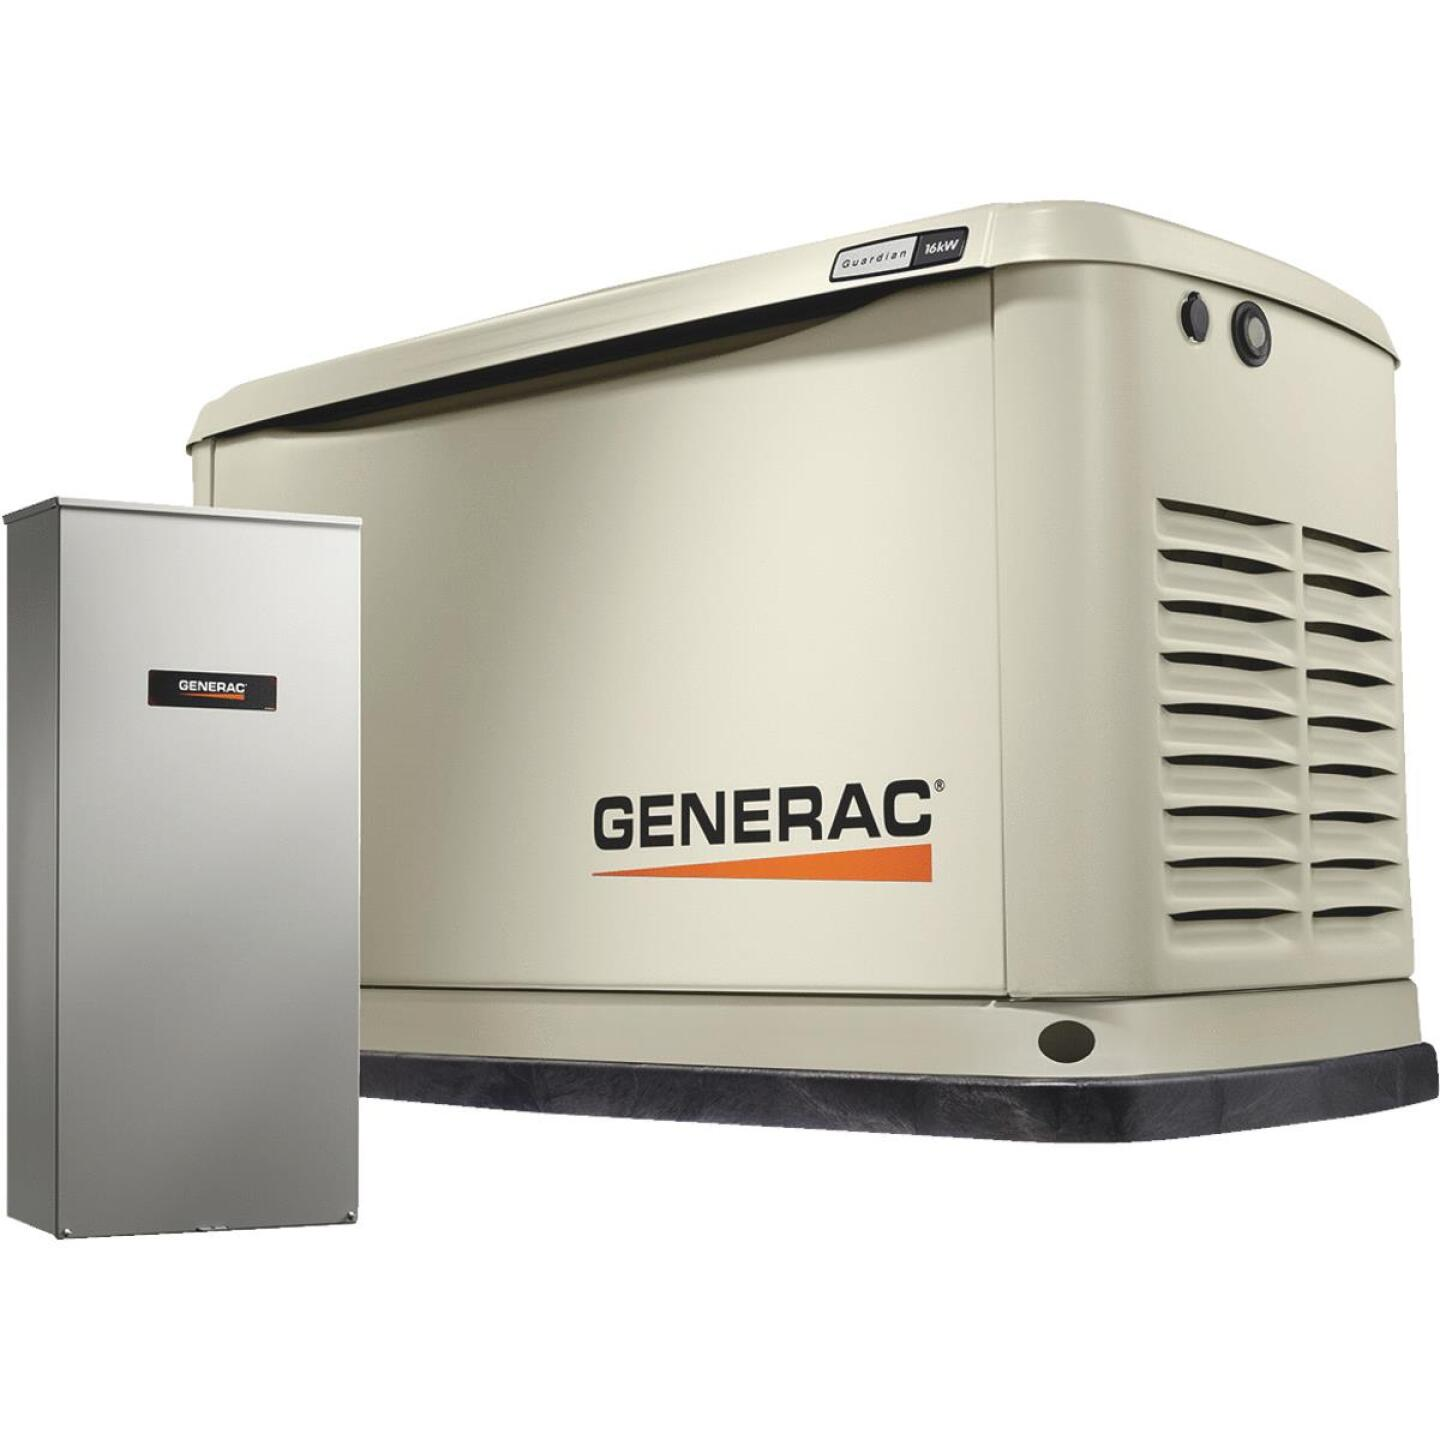 Generac Guardian WiFi 16,000W Natural Gas/LP Home Standby Generator with 200A Automatic Transfer Switch Image 1